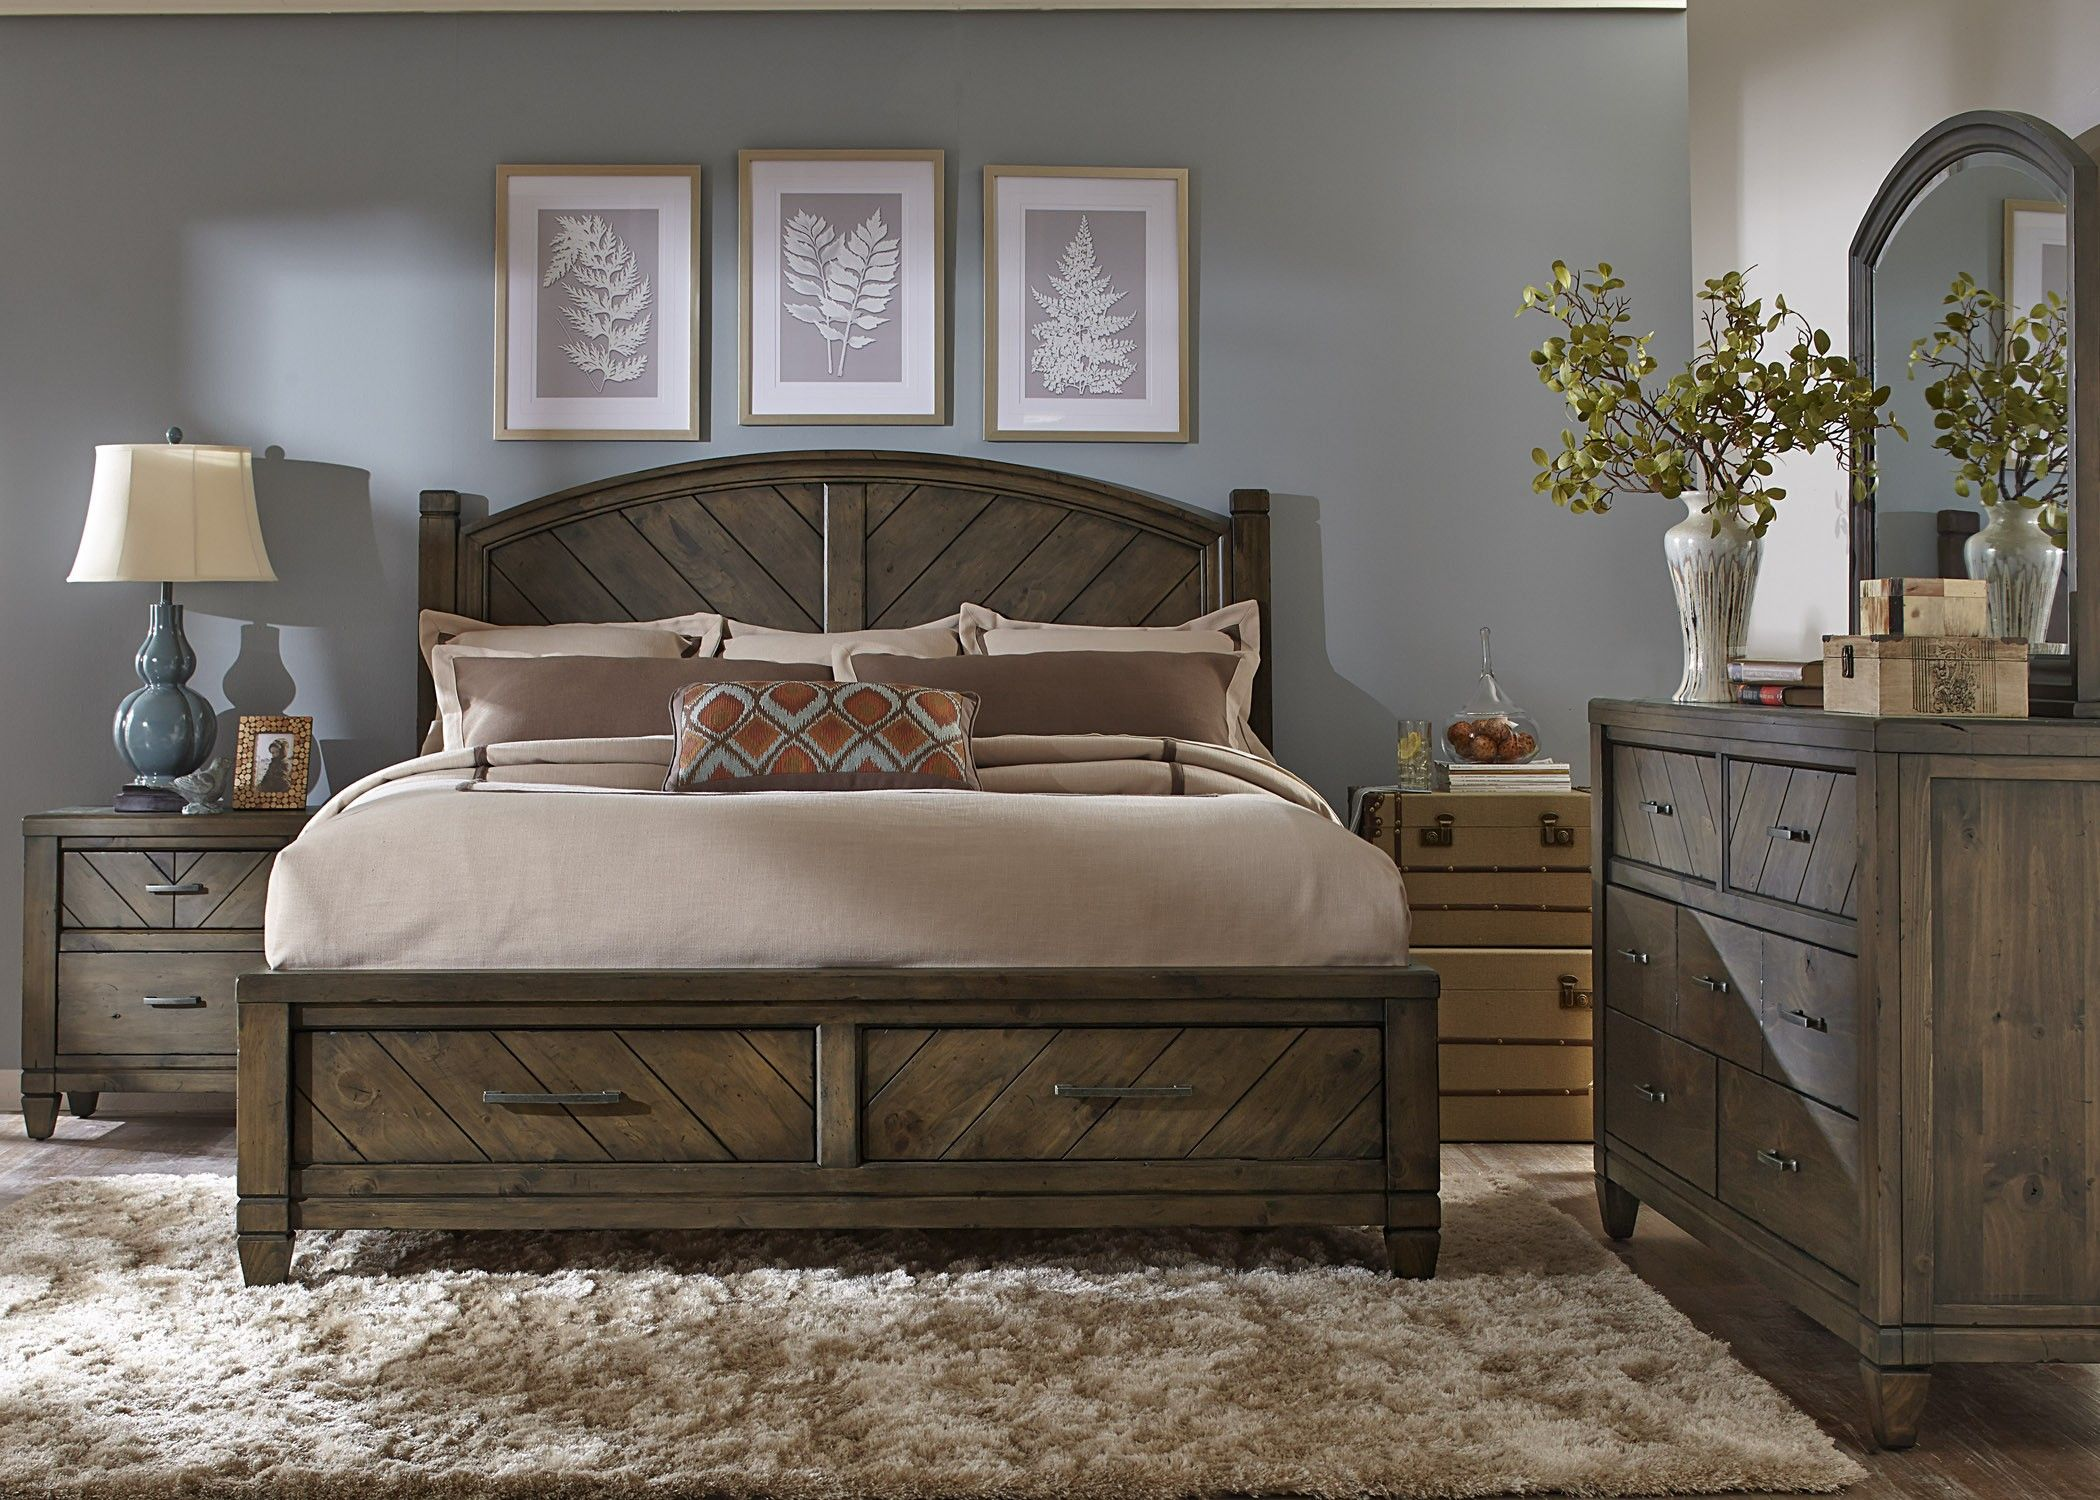 Modern Country Bedroom Set Modern Country Bedrooms Contemporary Bedroom Furniture Country